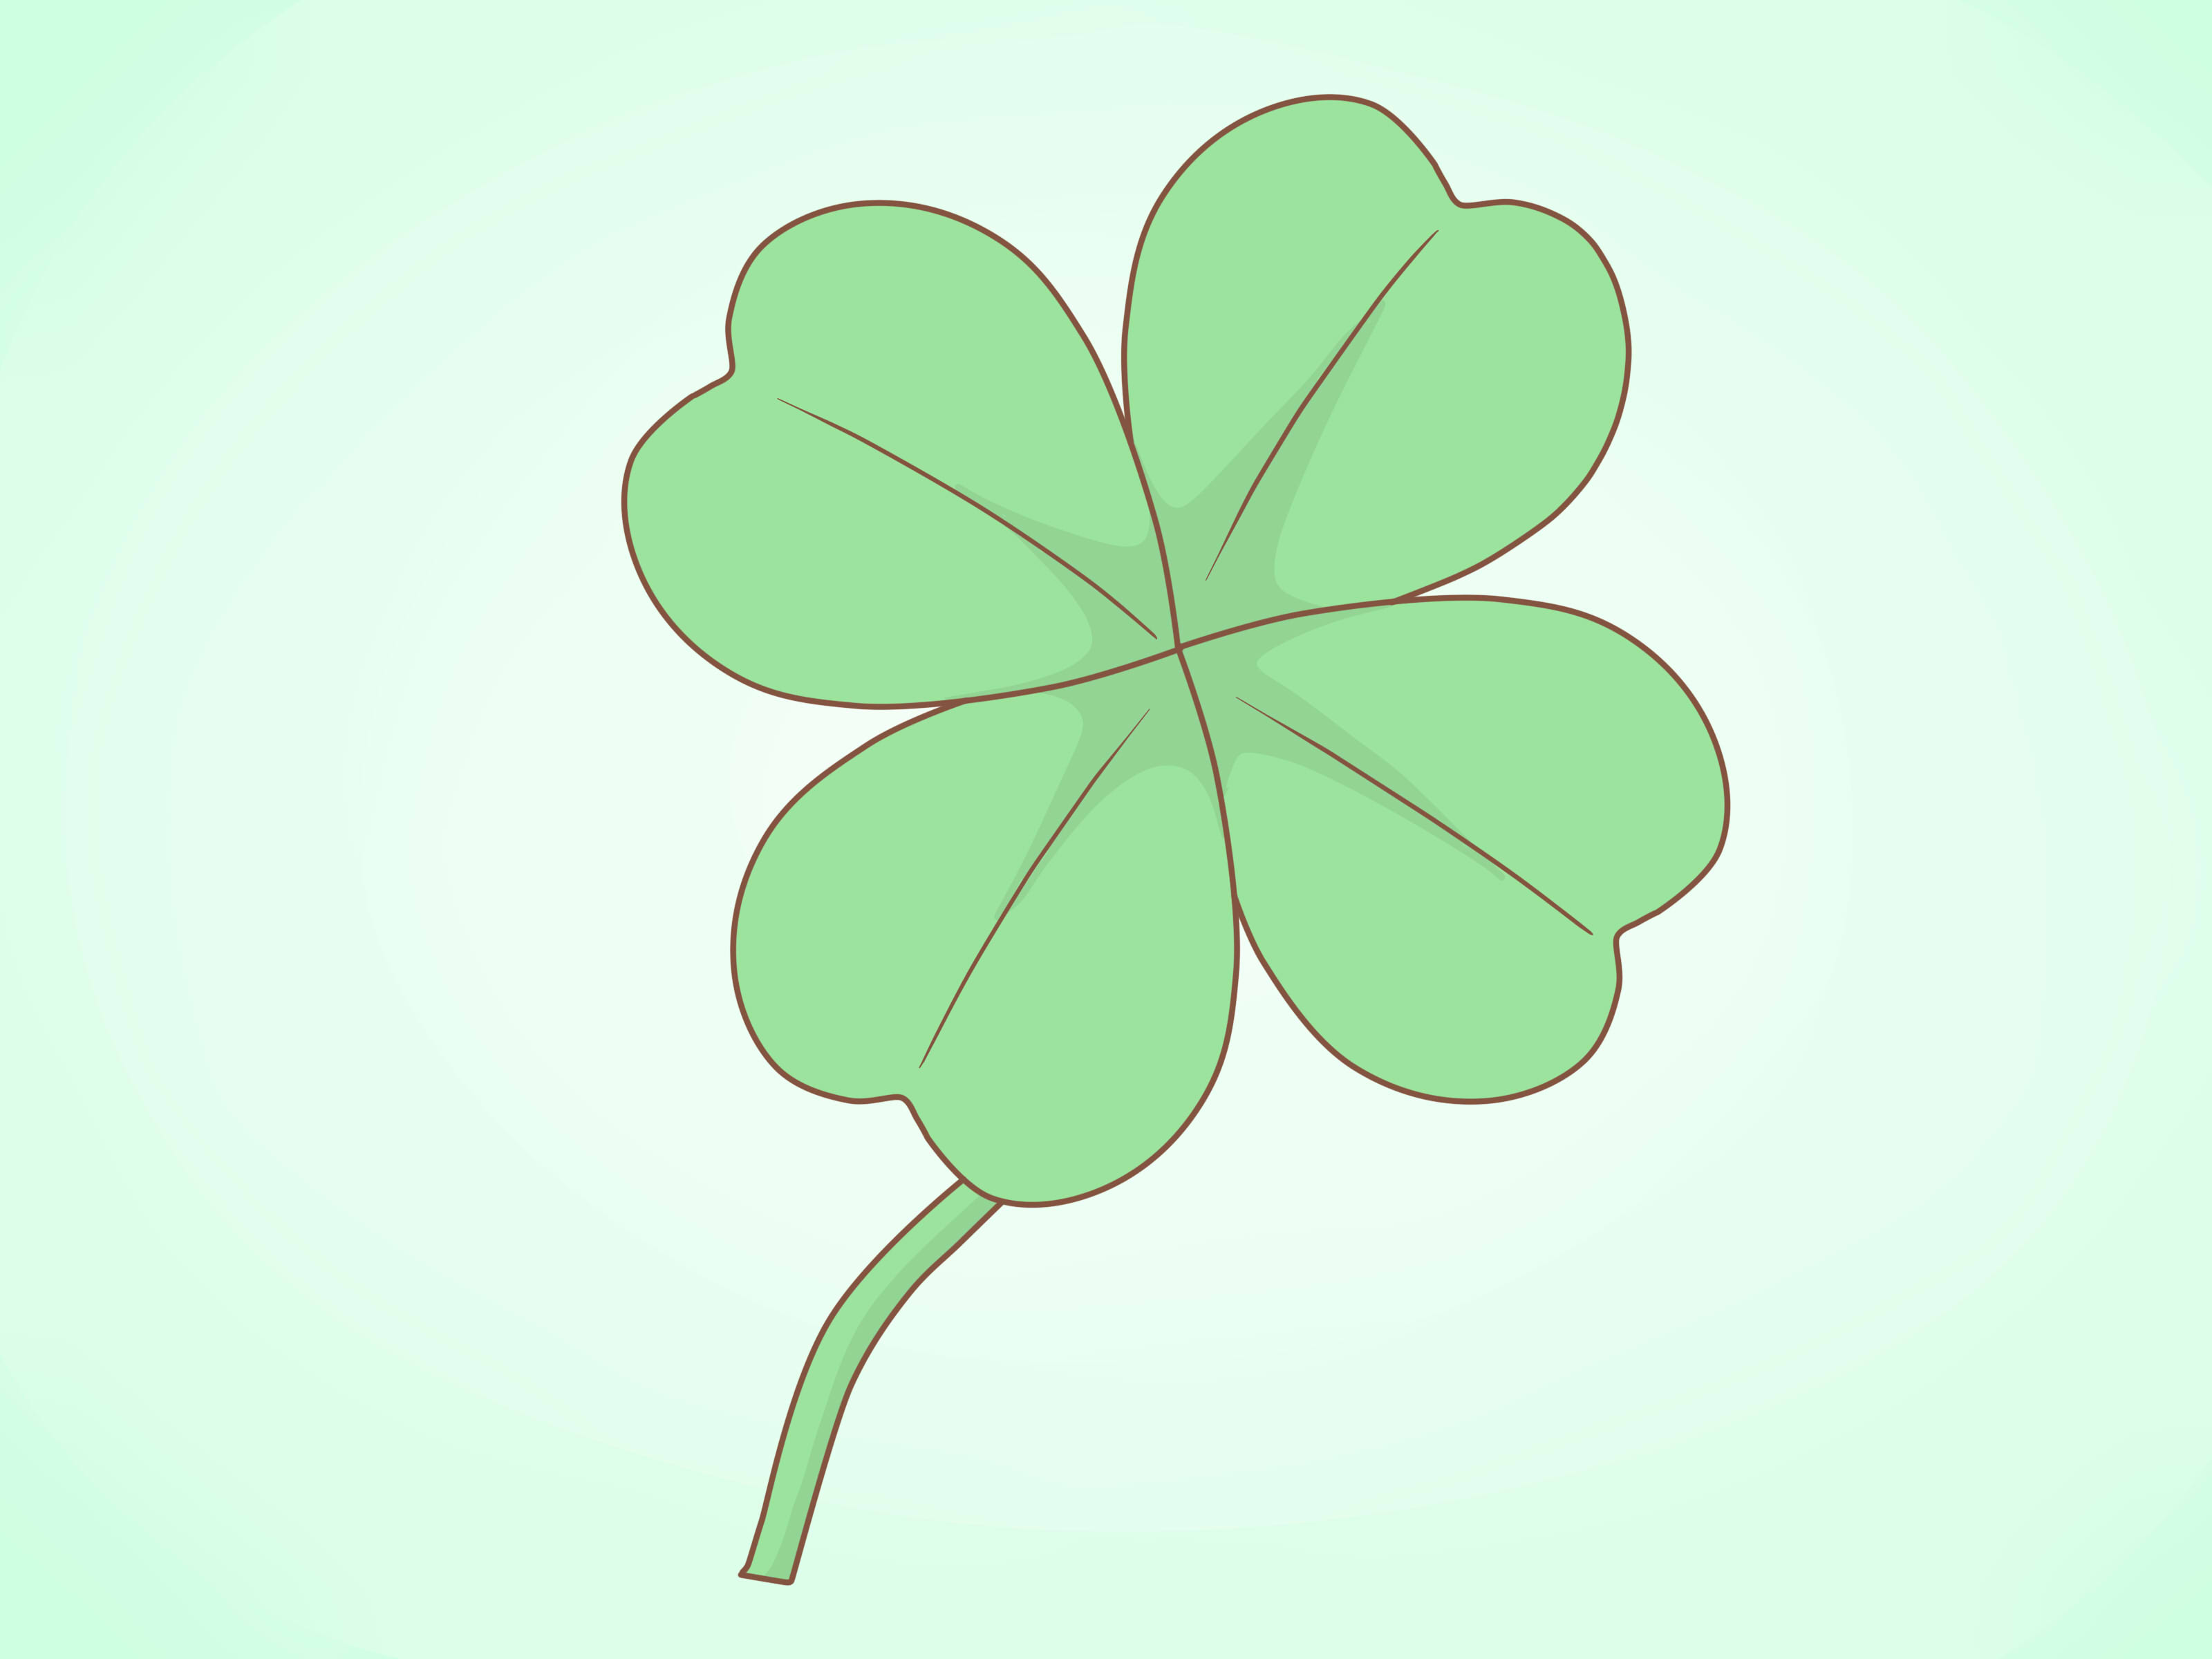 3200x2400 How To Draw A Clover 11 Steps With Pictures